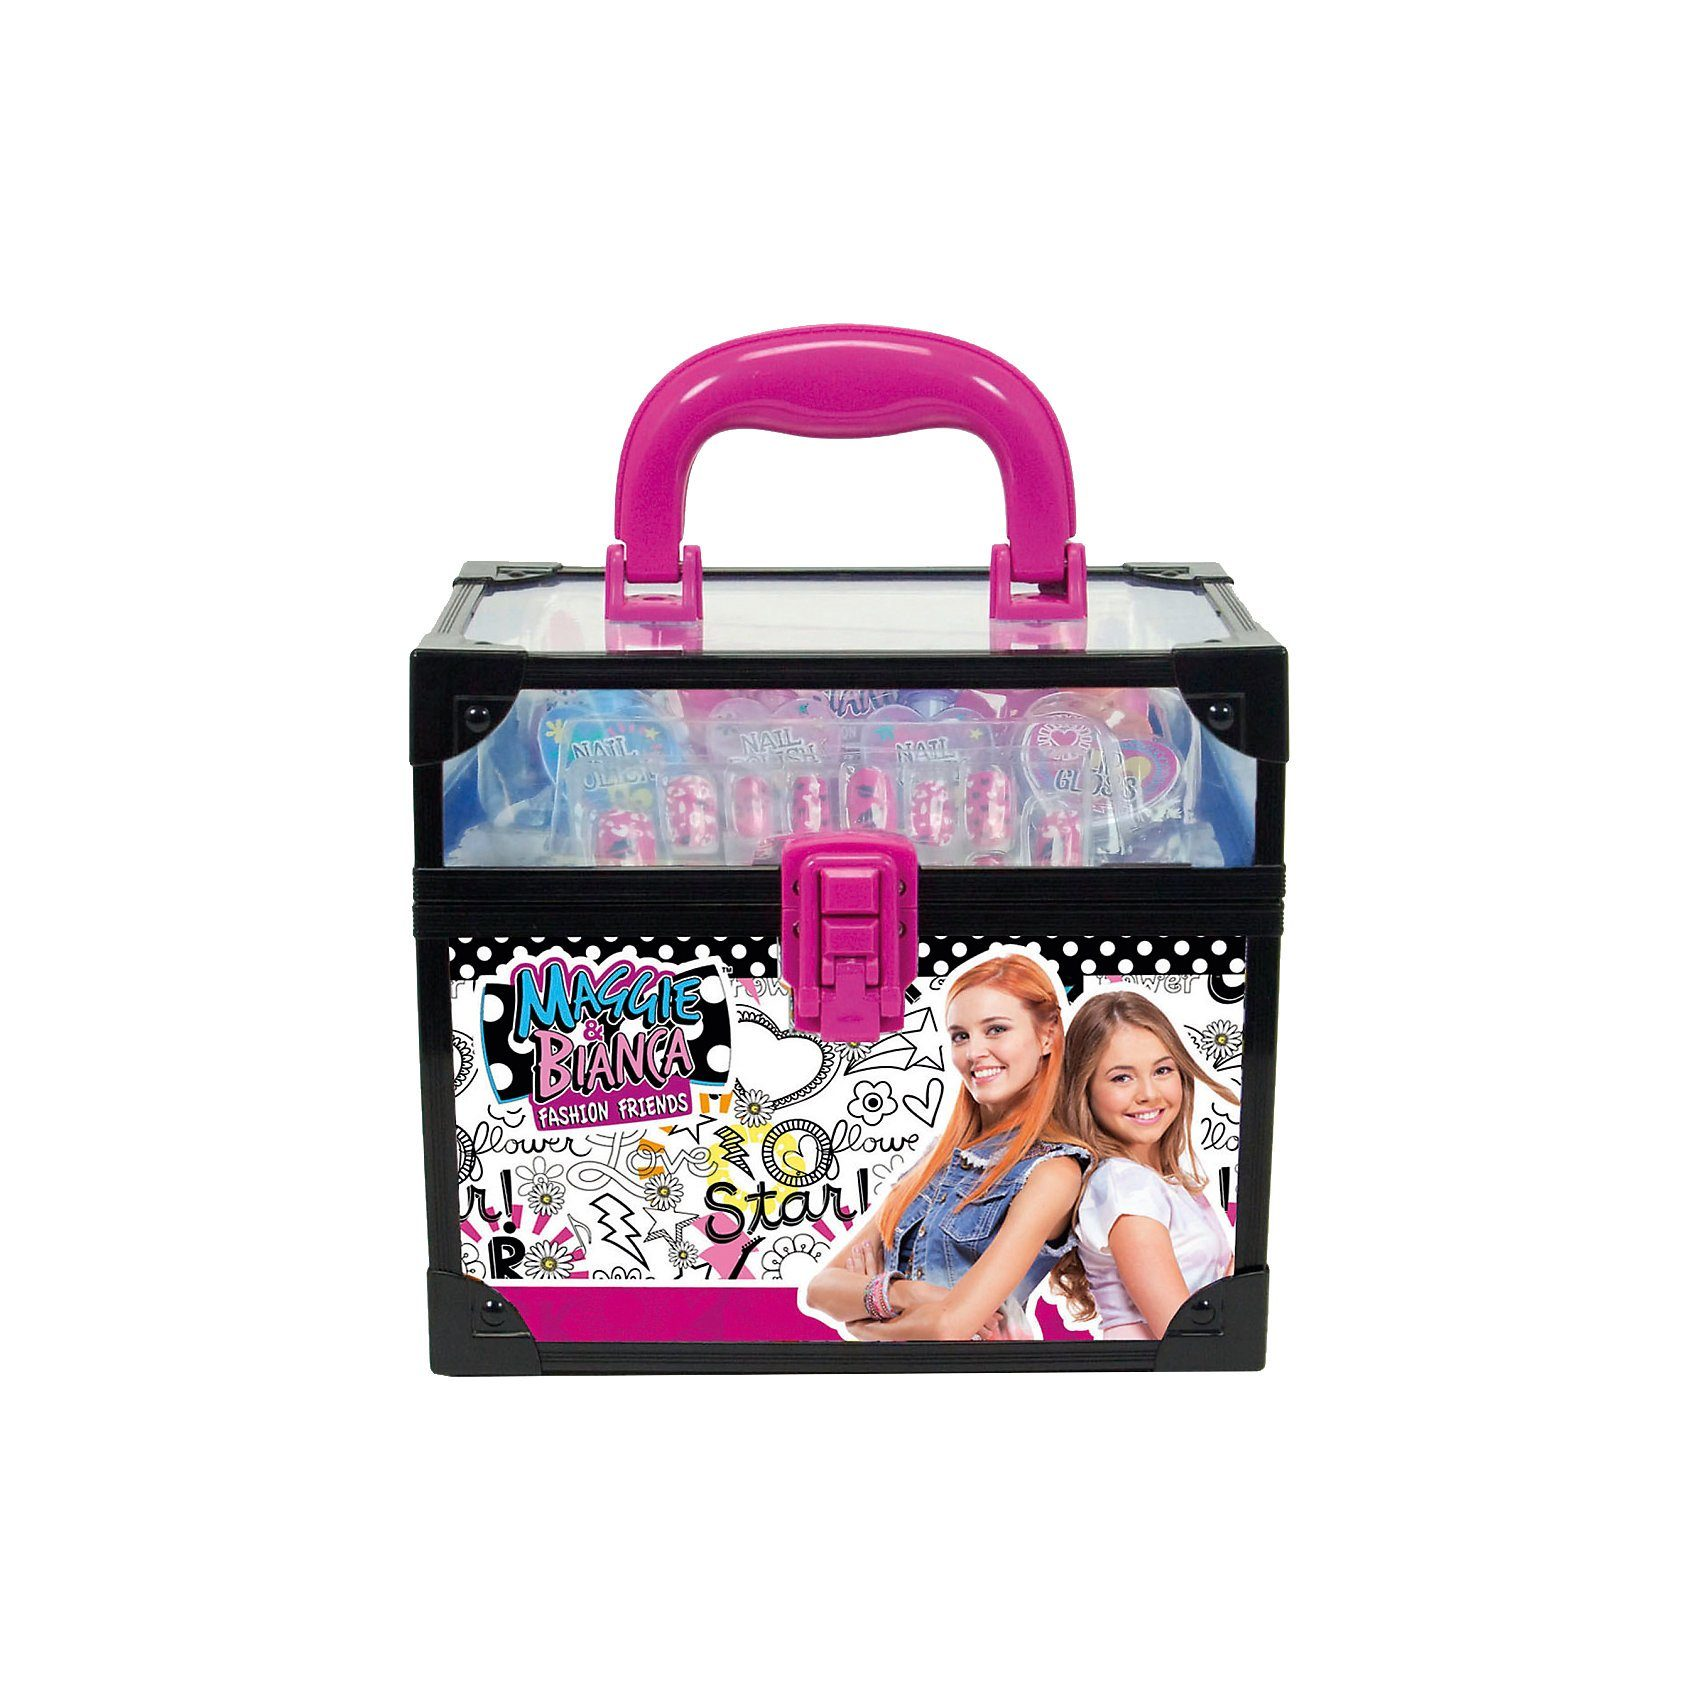 Simba Maggie & Bianca Fashion Friends Beauty Case